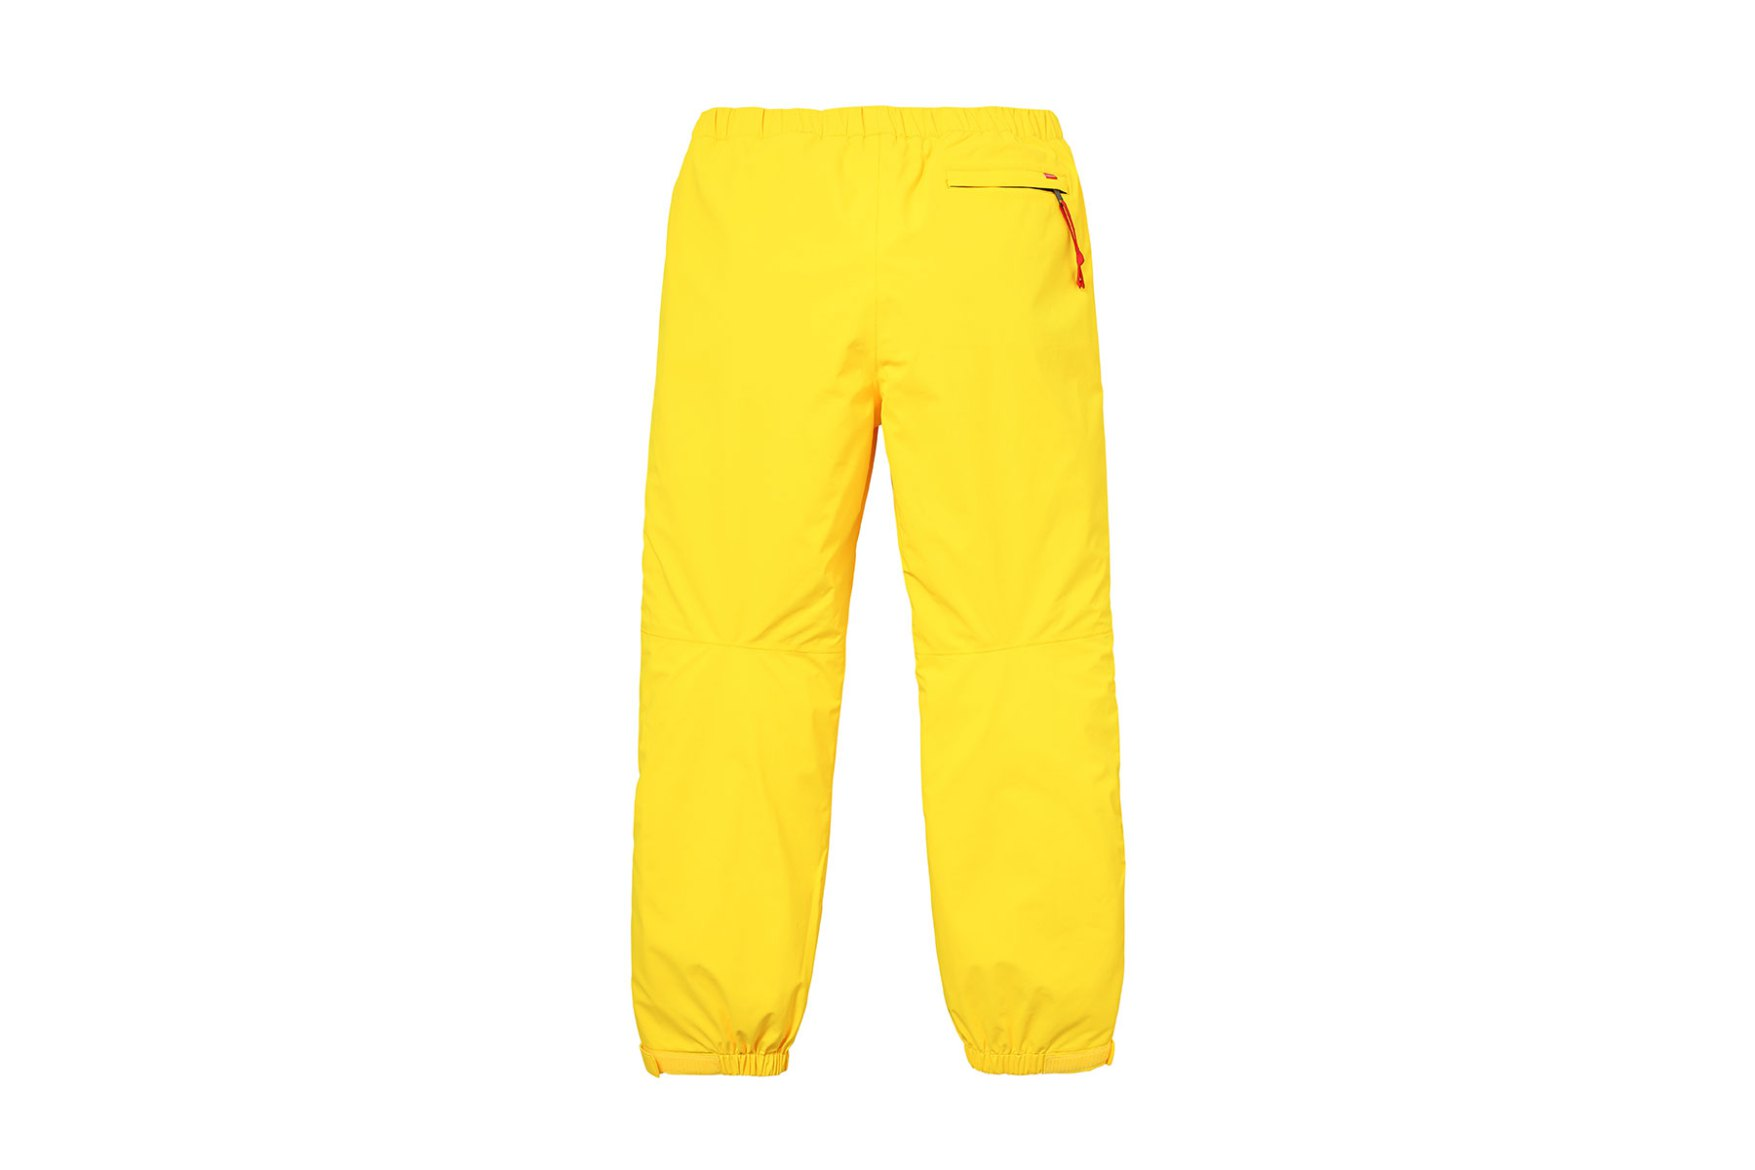 supreme-the-north-face-2017-spring-summer-yellow-gore-tex-pant-16